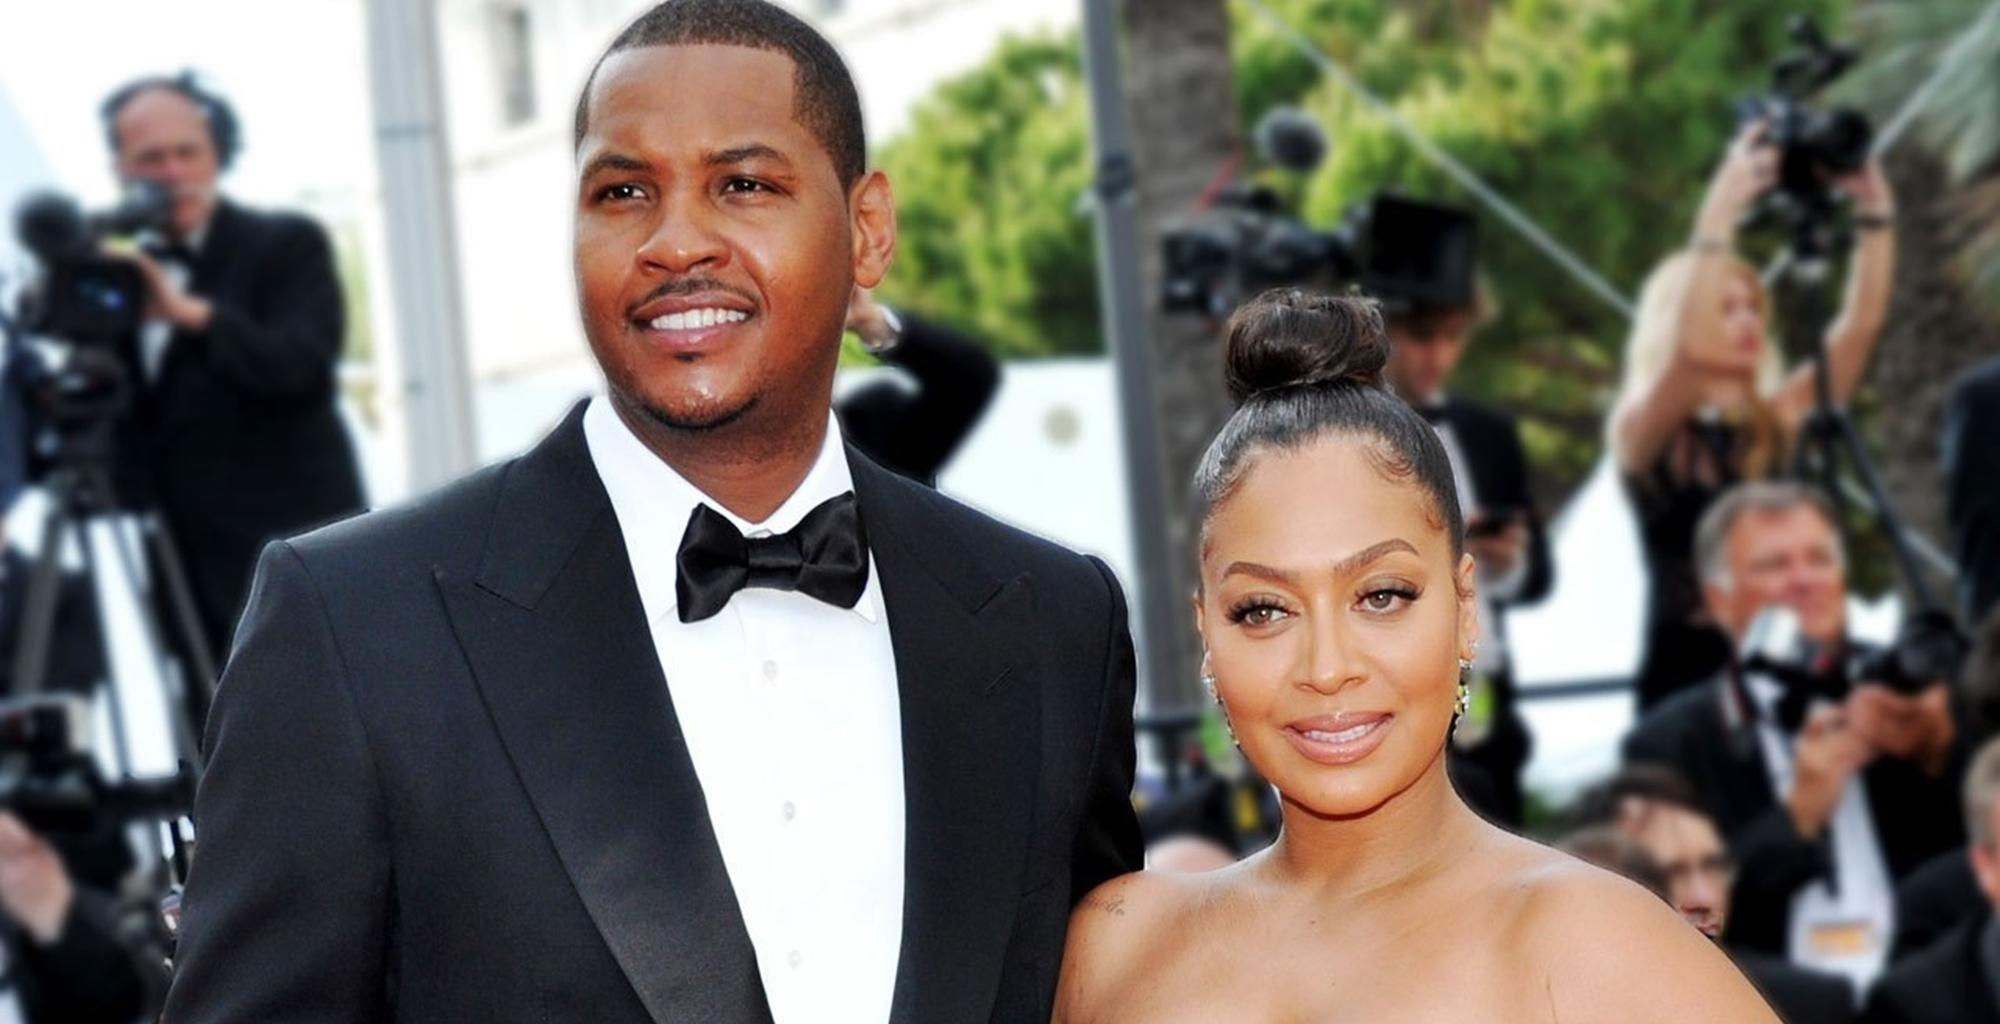 La La Anthony And Estranged Husband Carmelo Anthony Reunite In Adorable Video For Their Son, Kiyan -- Is The Cheating Drama Involving A Model Over?